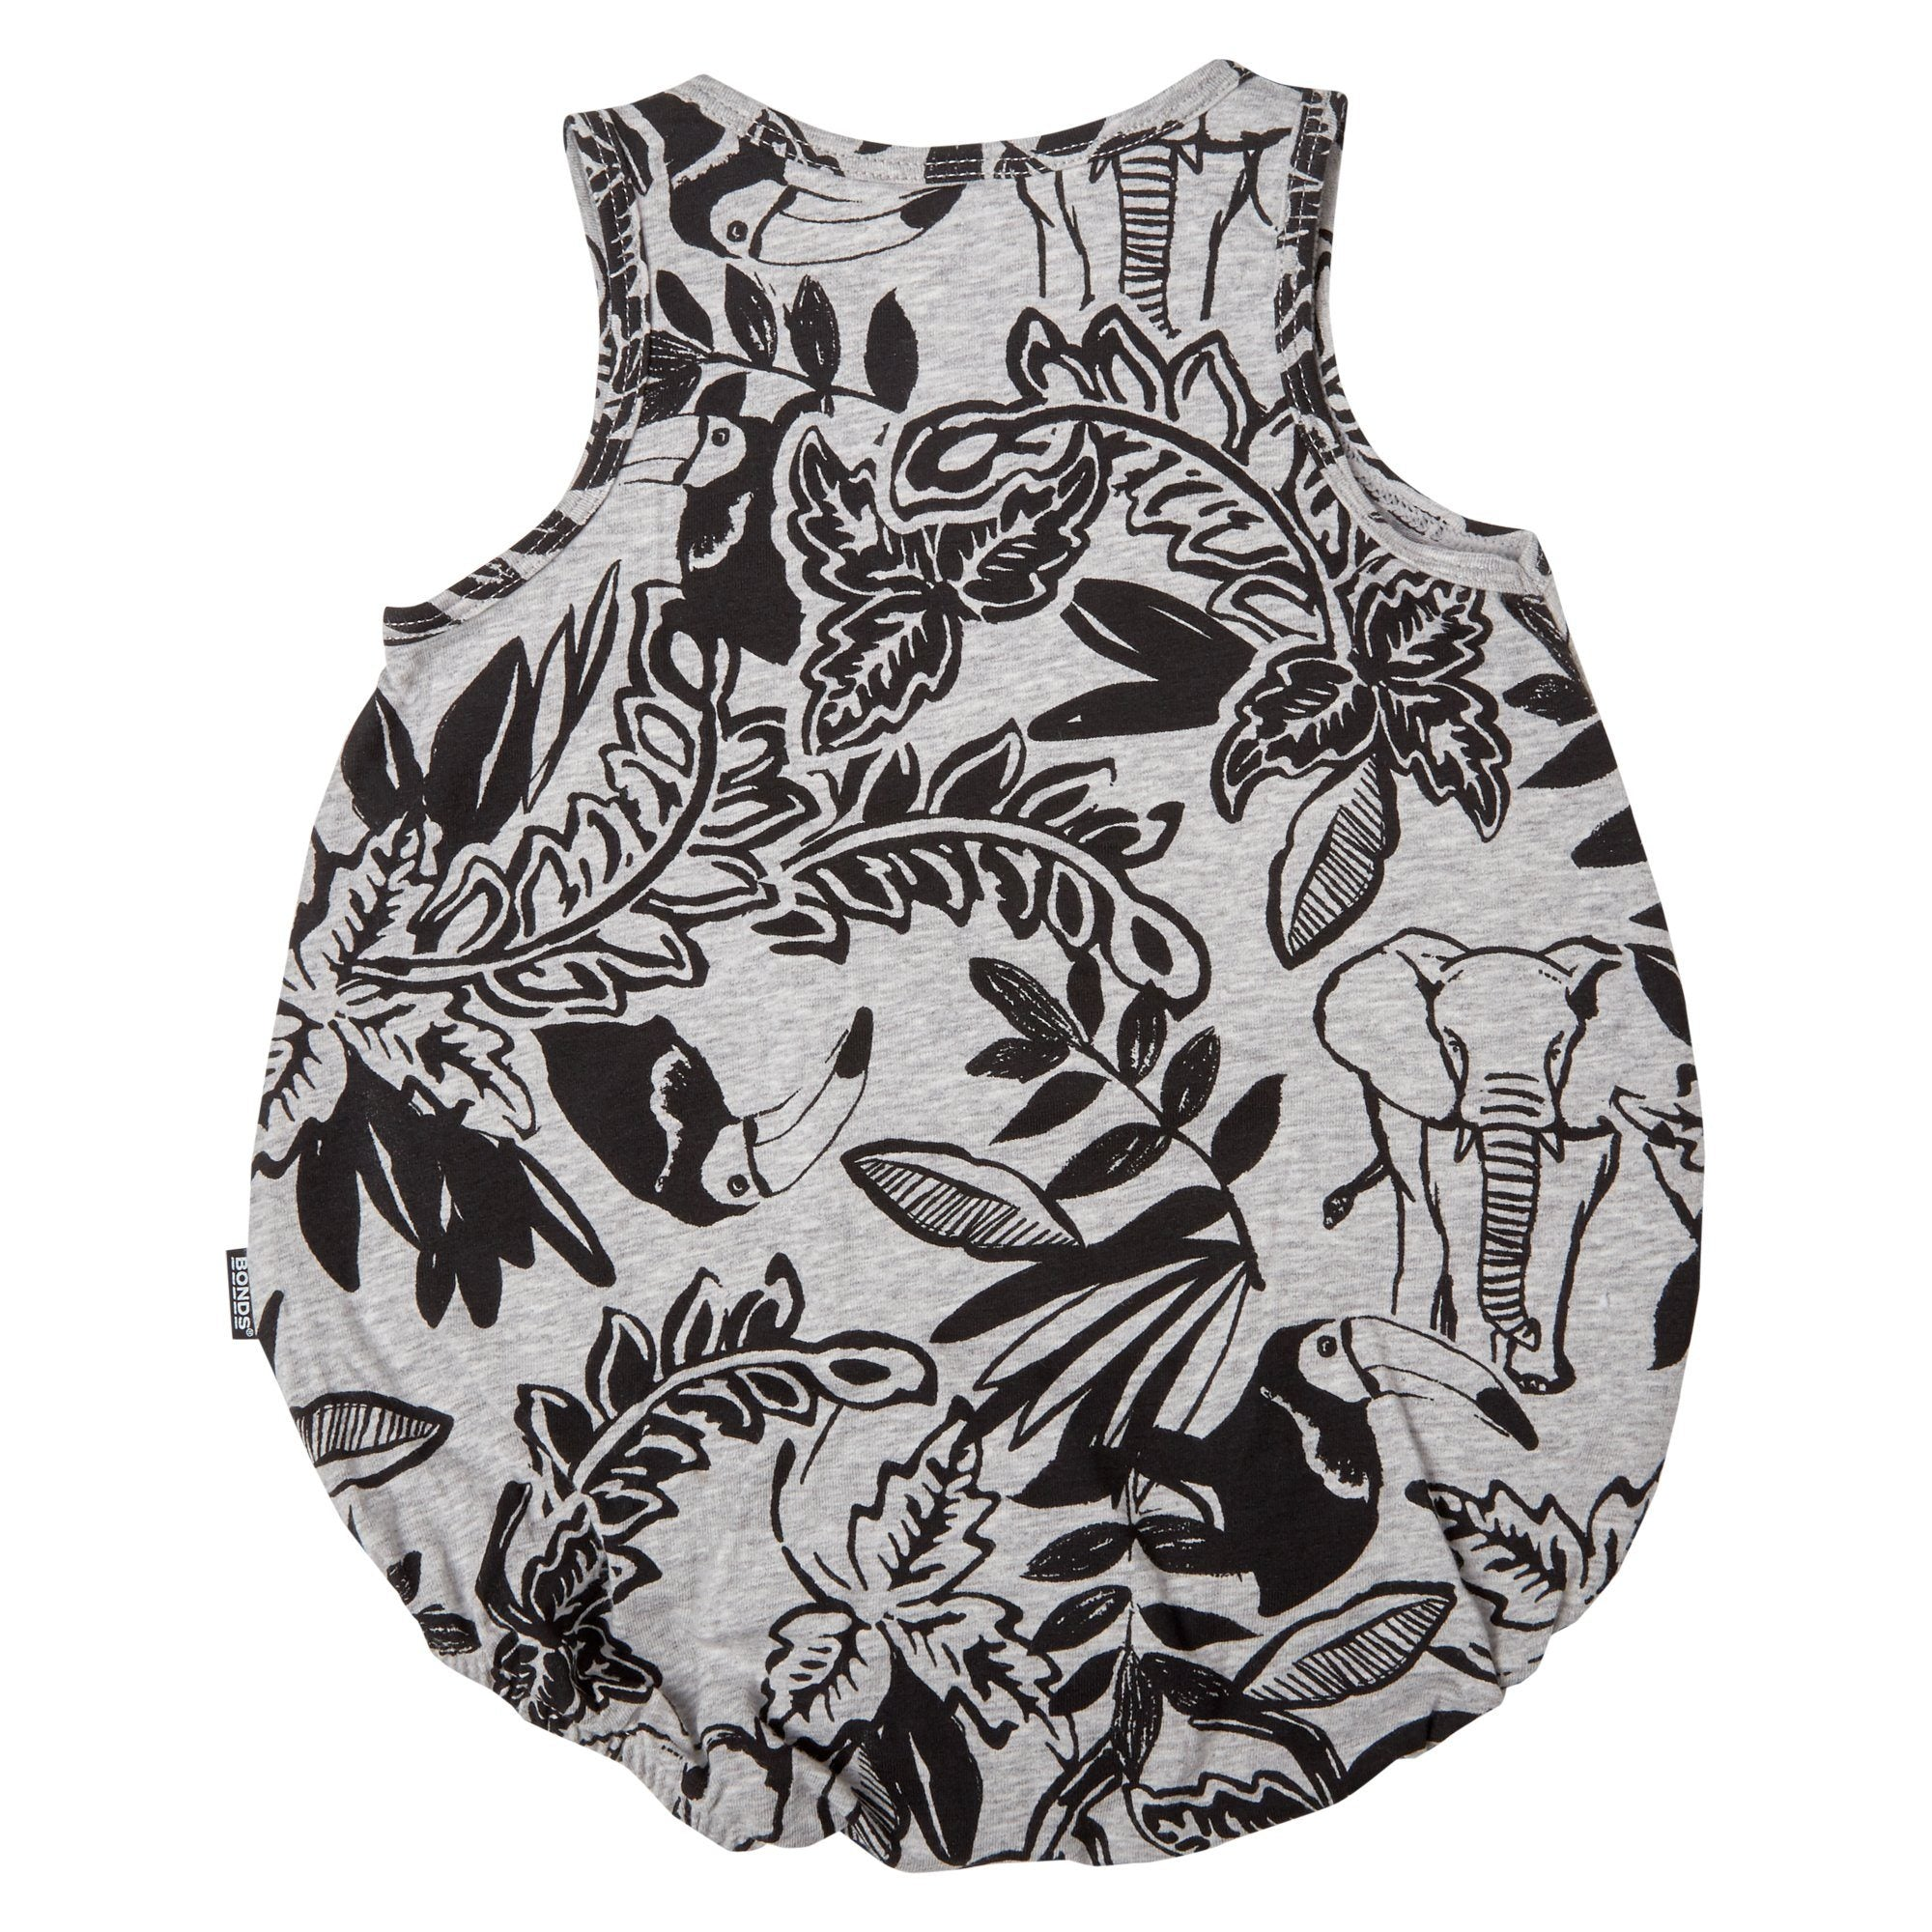 Bonds Baby Stretchies Bubbleuit Jungle Print Grey Baby Isbister & Co Wholesale